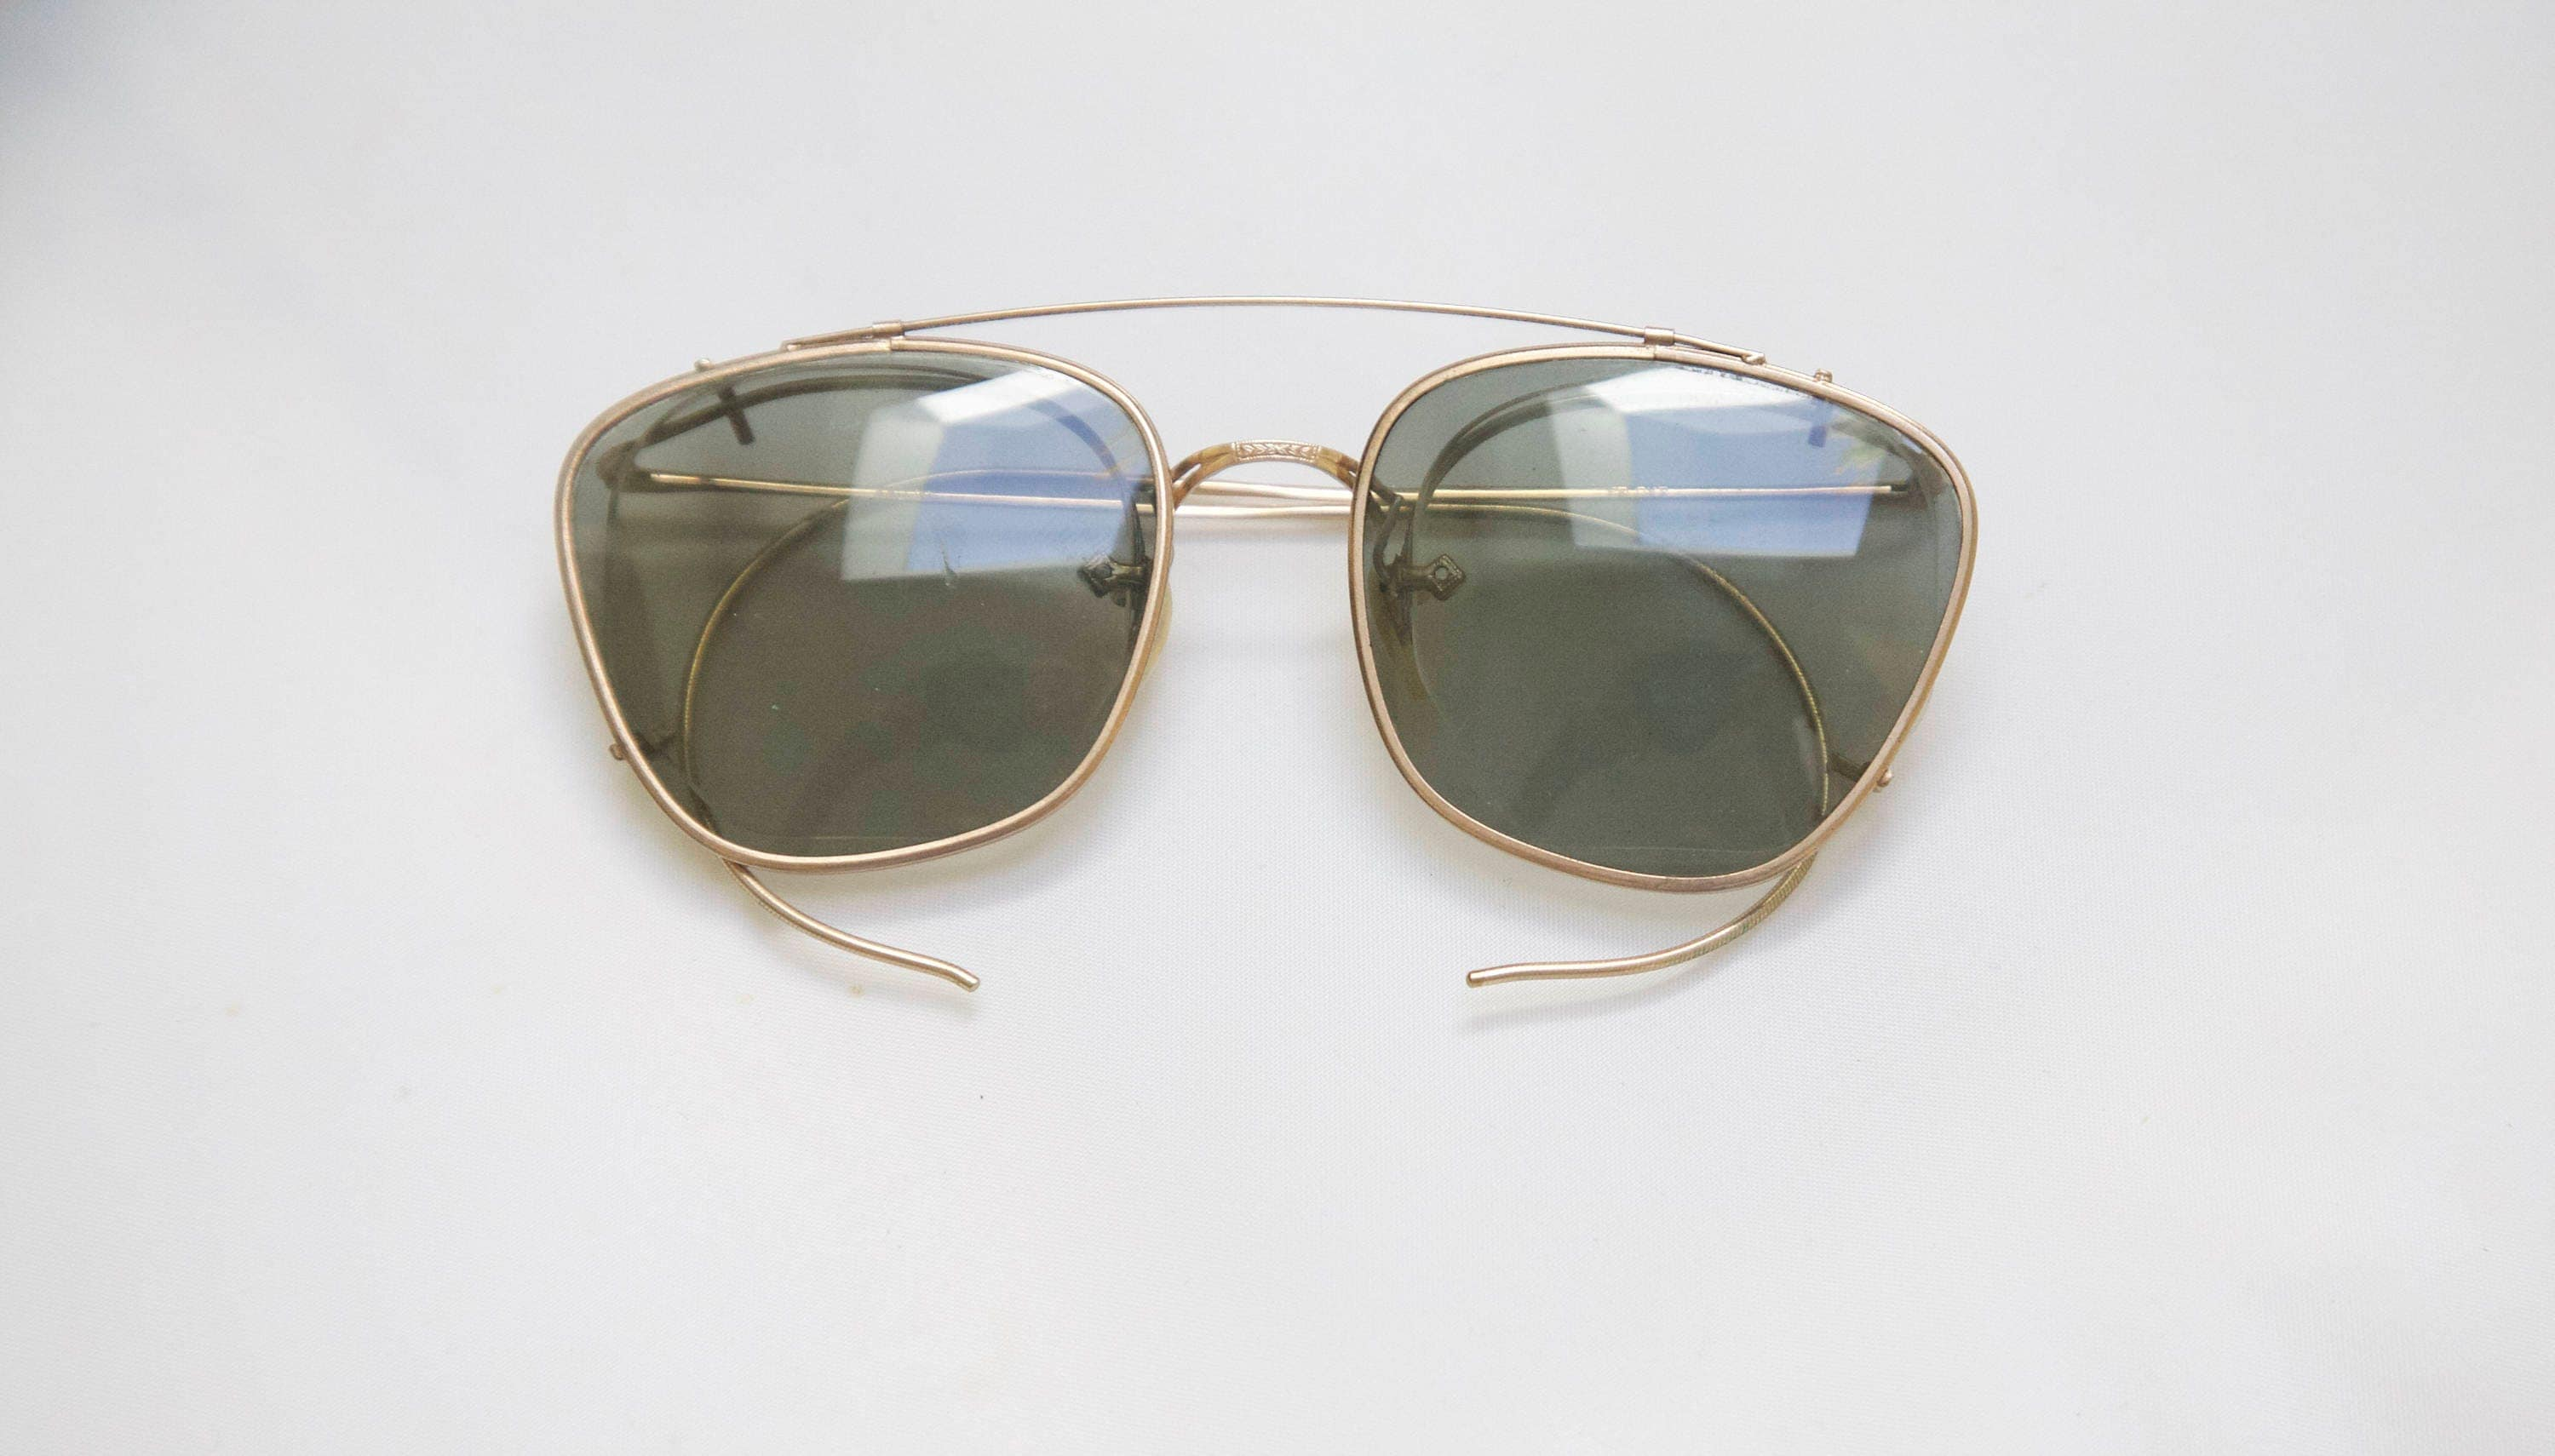 7457c54425 Imperial Antique Optical Frames with clip on sunglass lenses   Gold Filled    1910 s to 1920 s